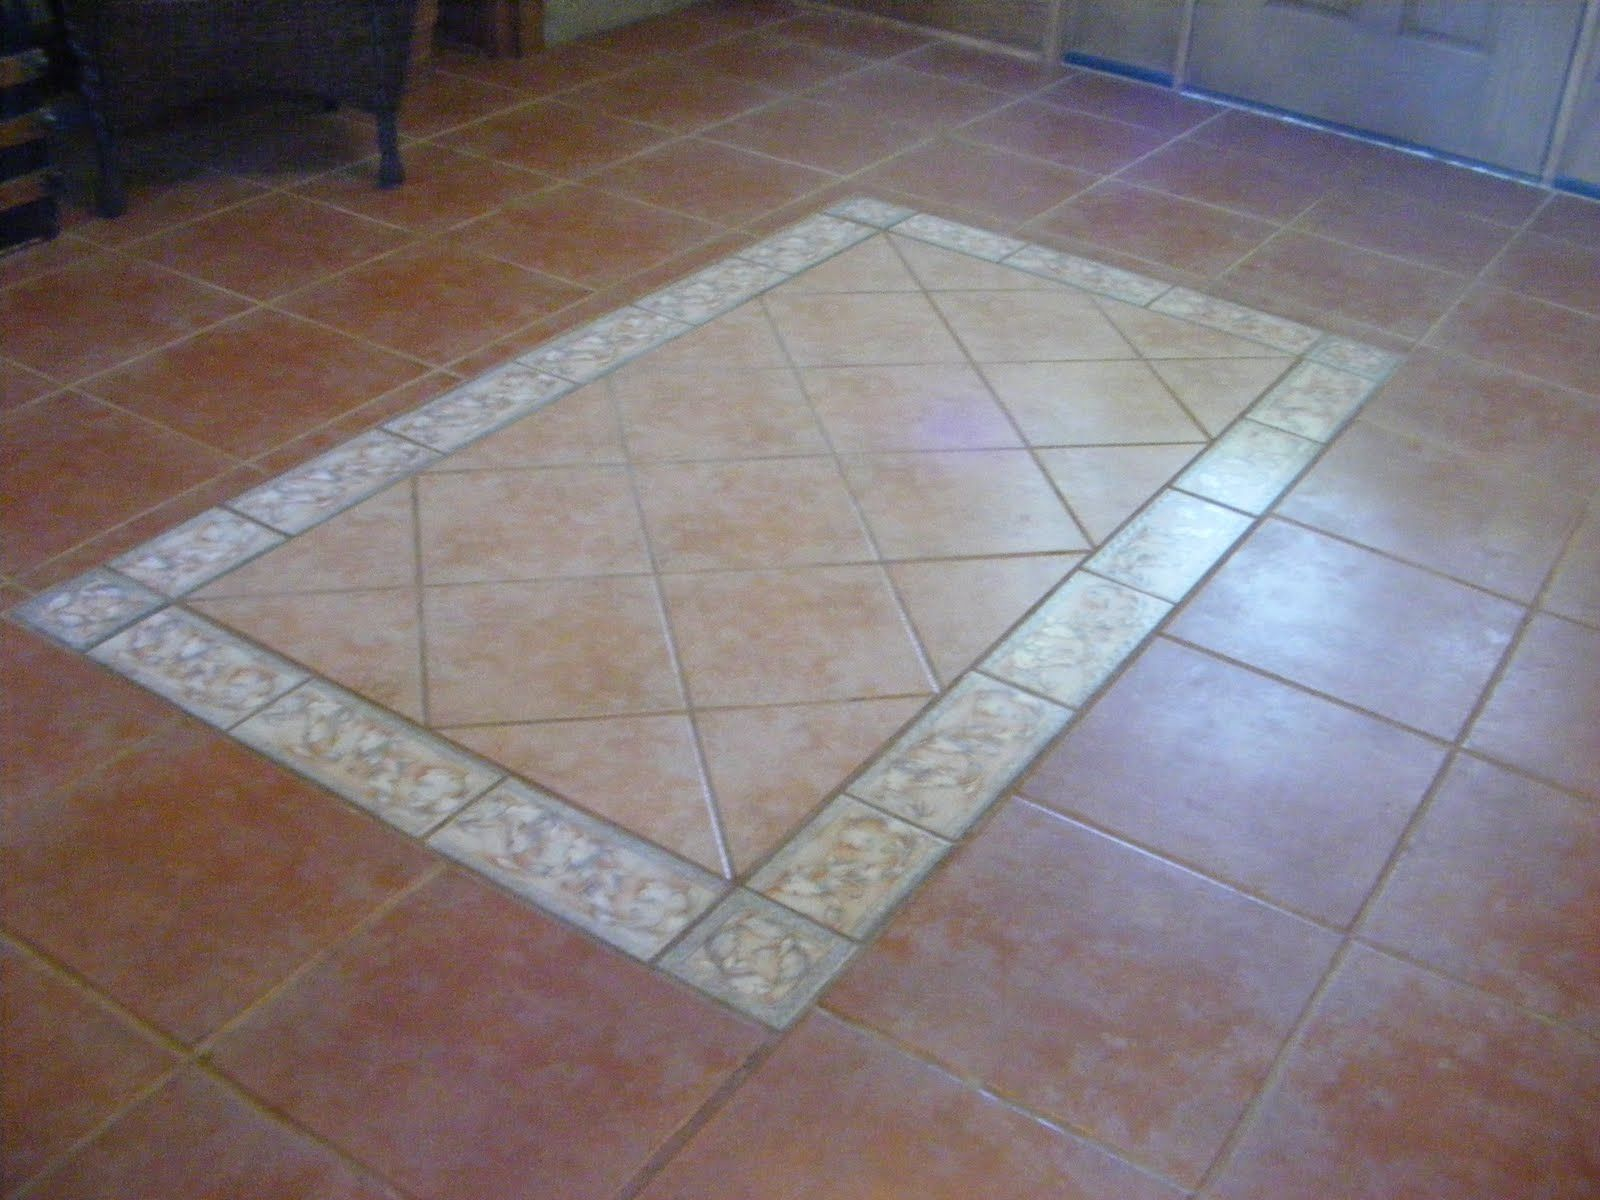 Decoration floor tile design patterns of new inspiration for Cool floor tile designs